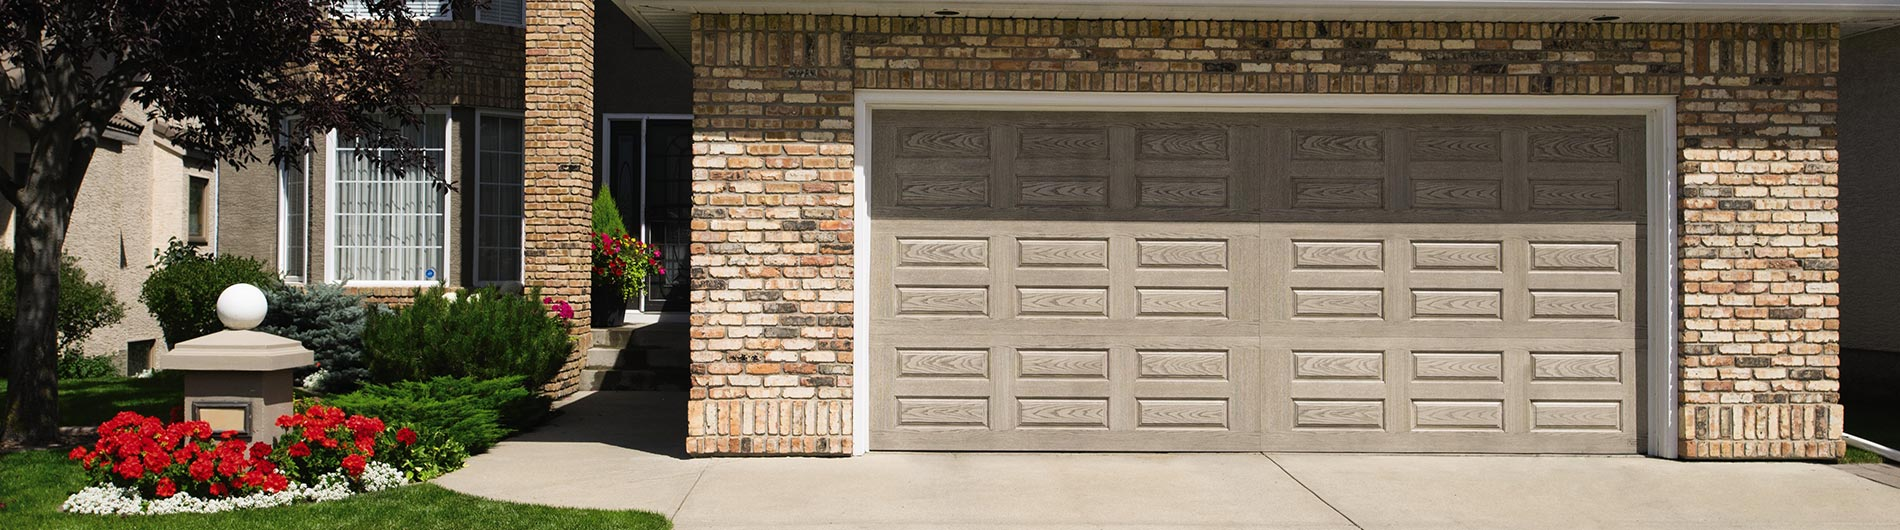 9800-Fiberglass-Garage-Door-Horiz-Raised